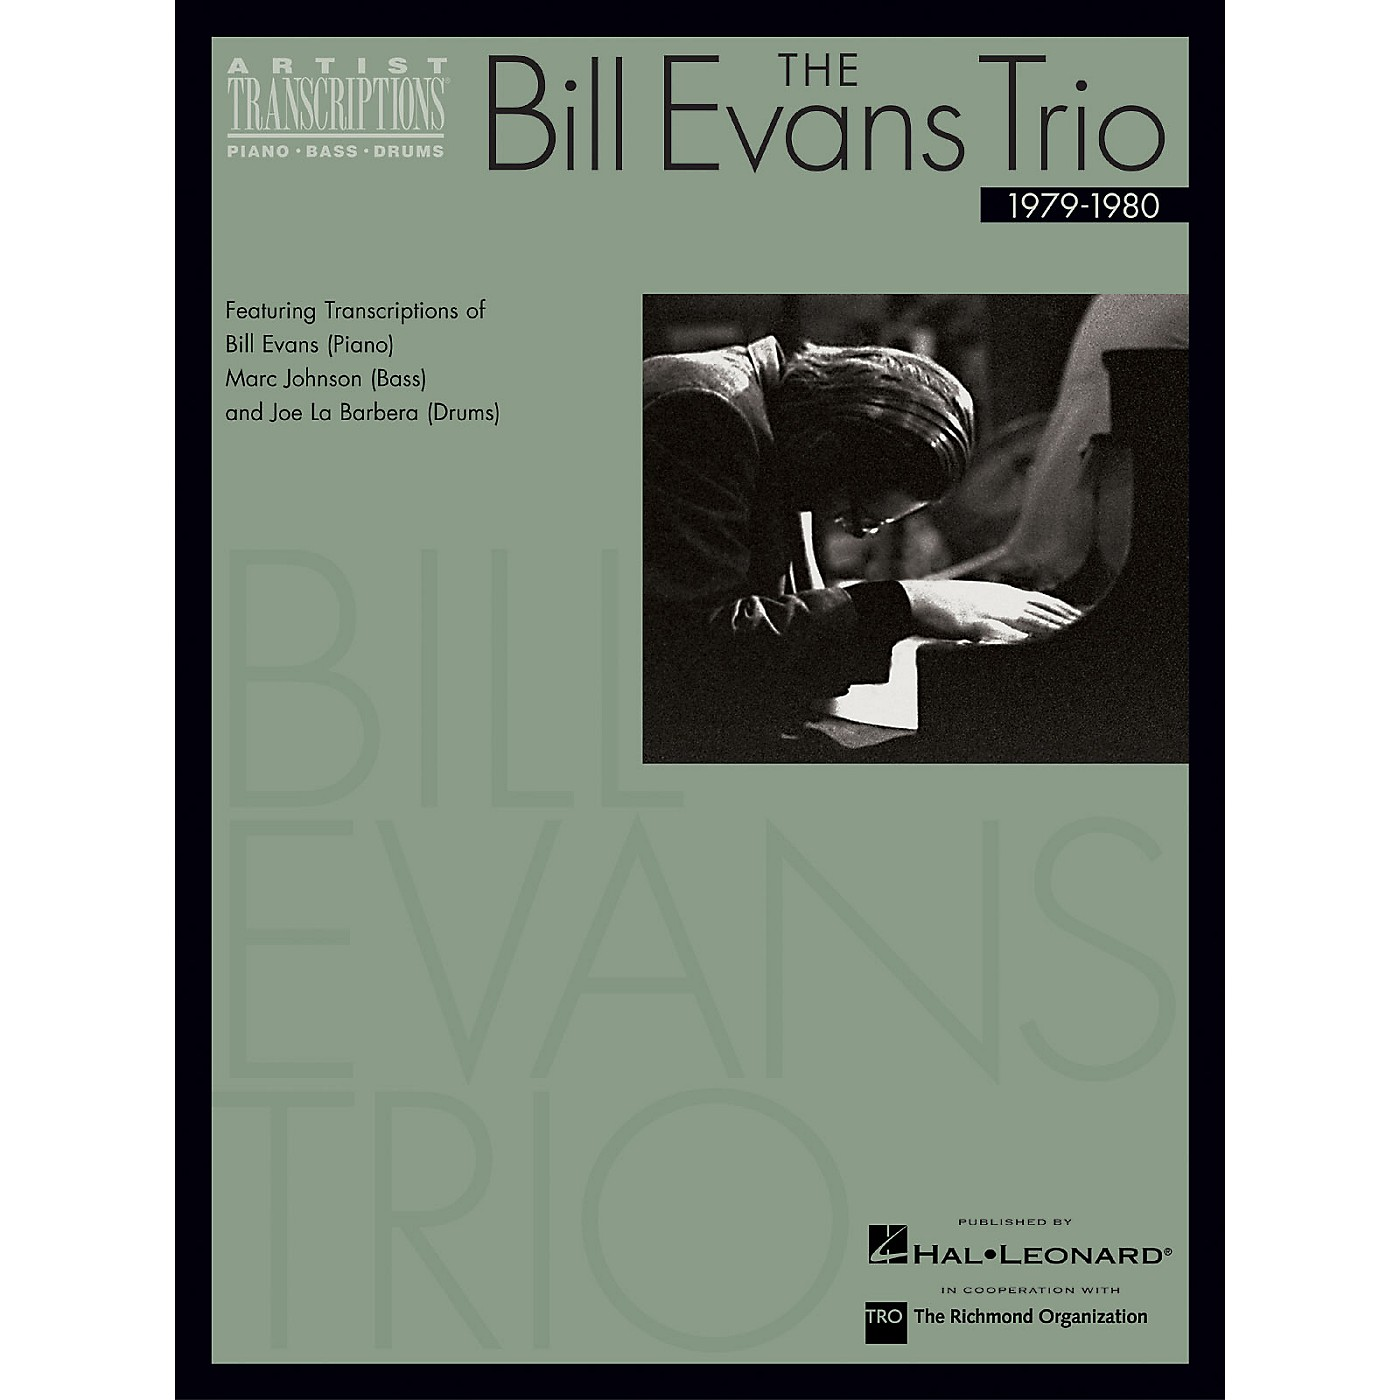 Hal Leonard The Bill Evans Trio - 1979-1980 Artist Transcriptions Series Performed by Bill Evans thumbnail